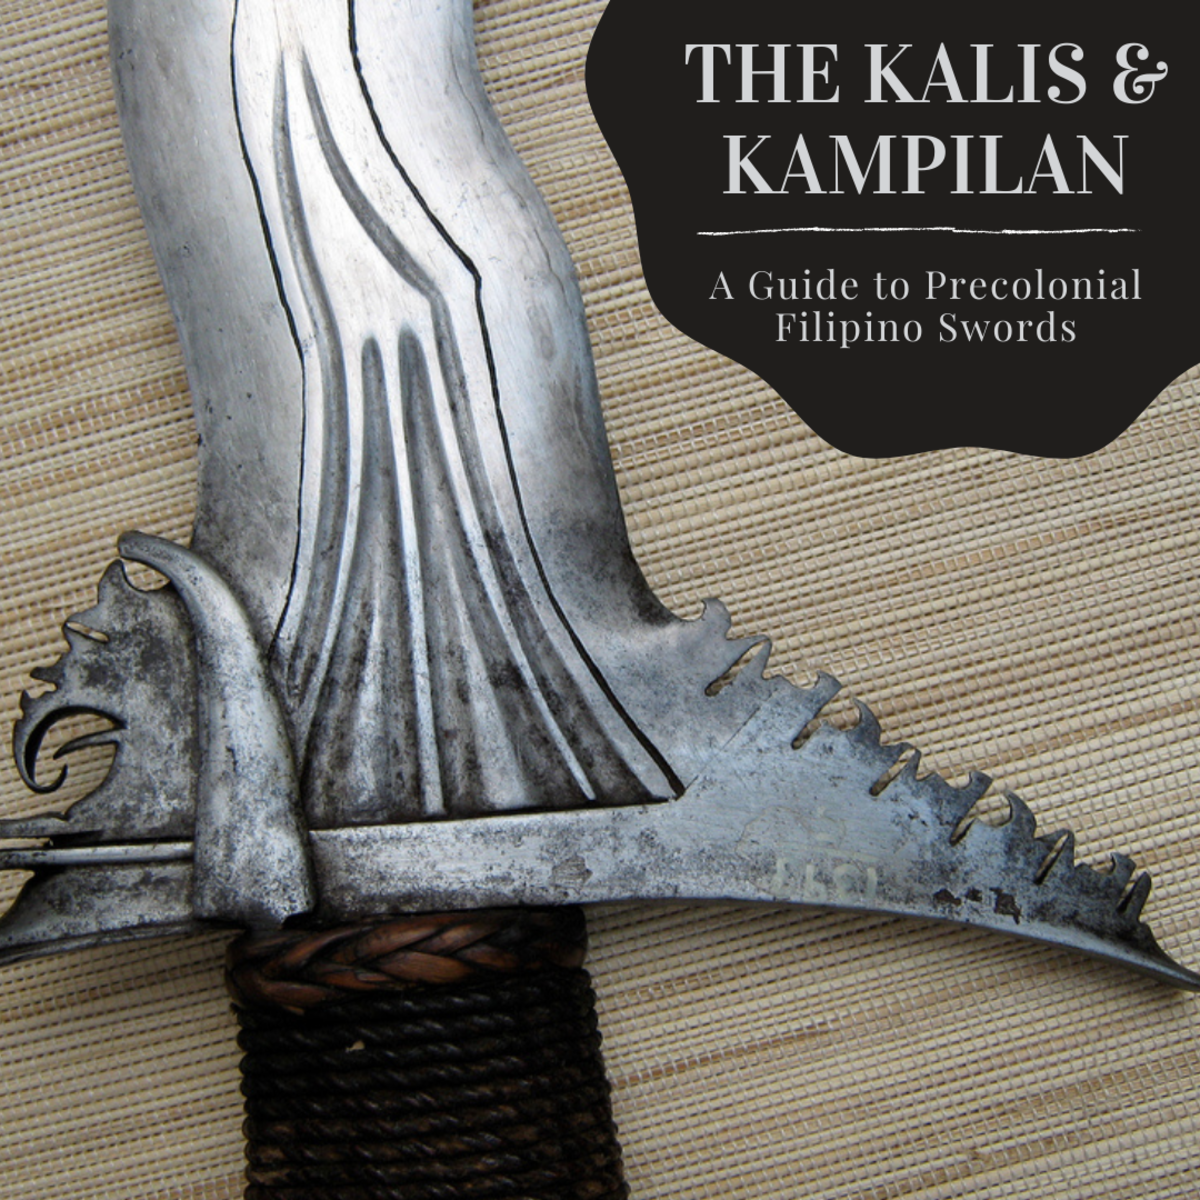 This article will take a look at two of the most popular swords of the precolonial Filipino era: the kalis and kampilan.